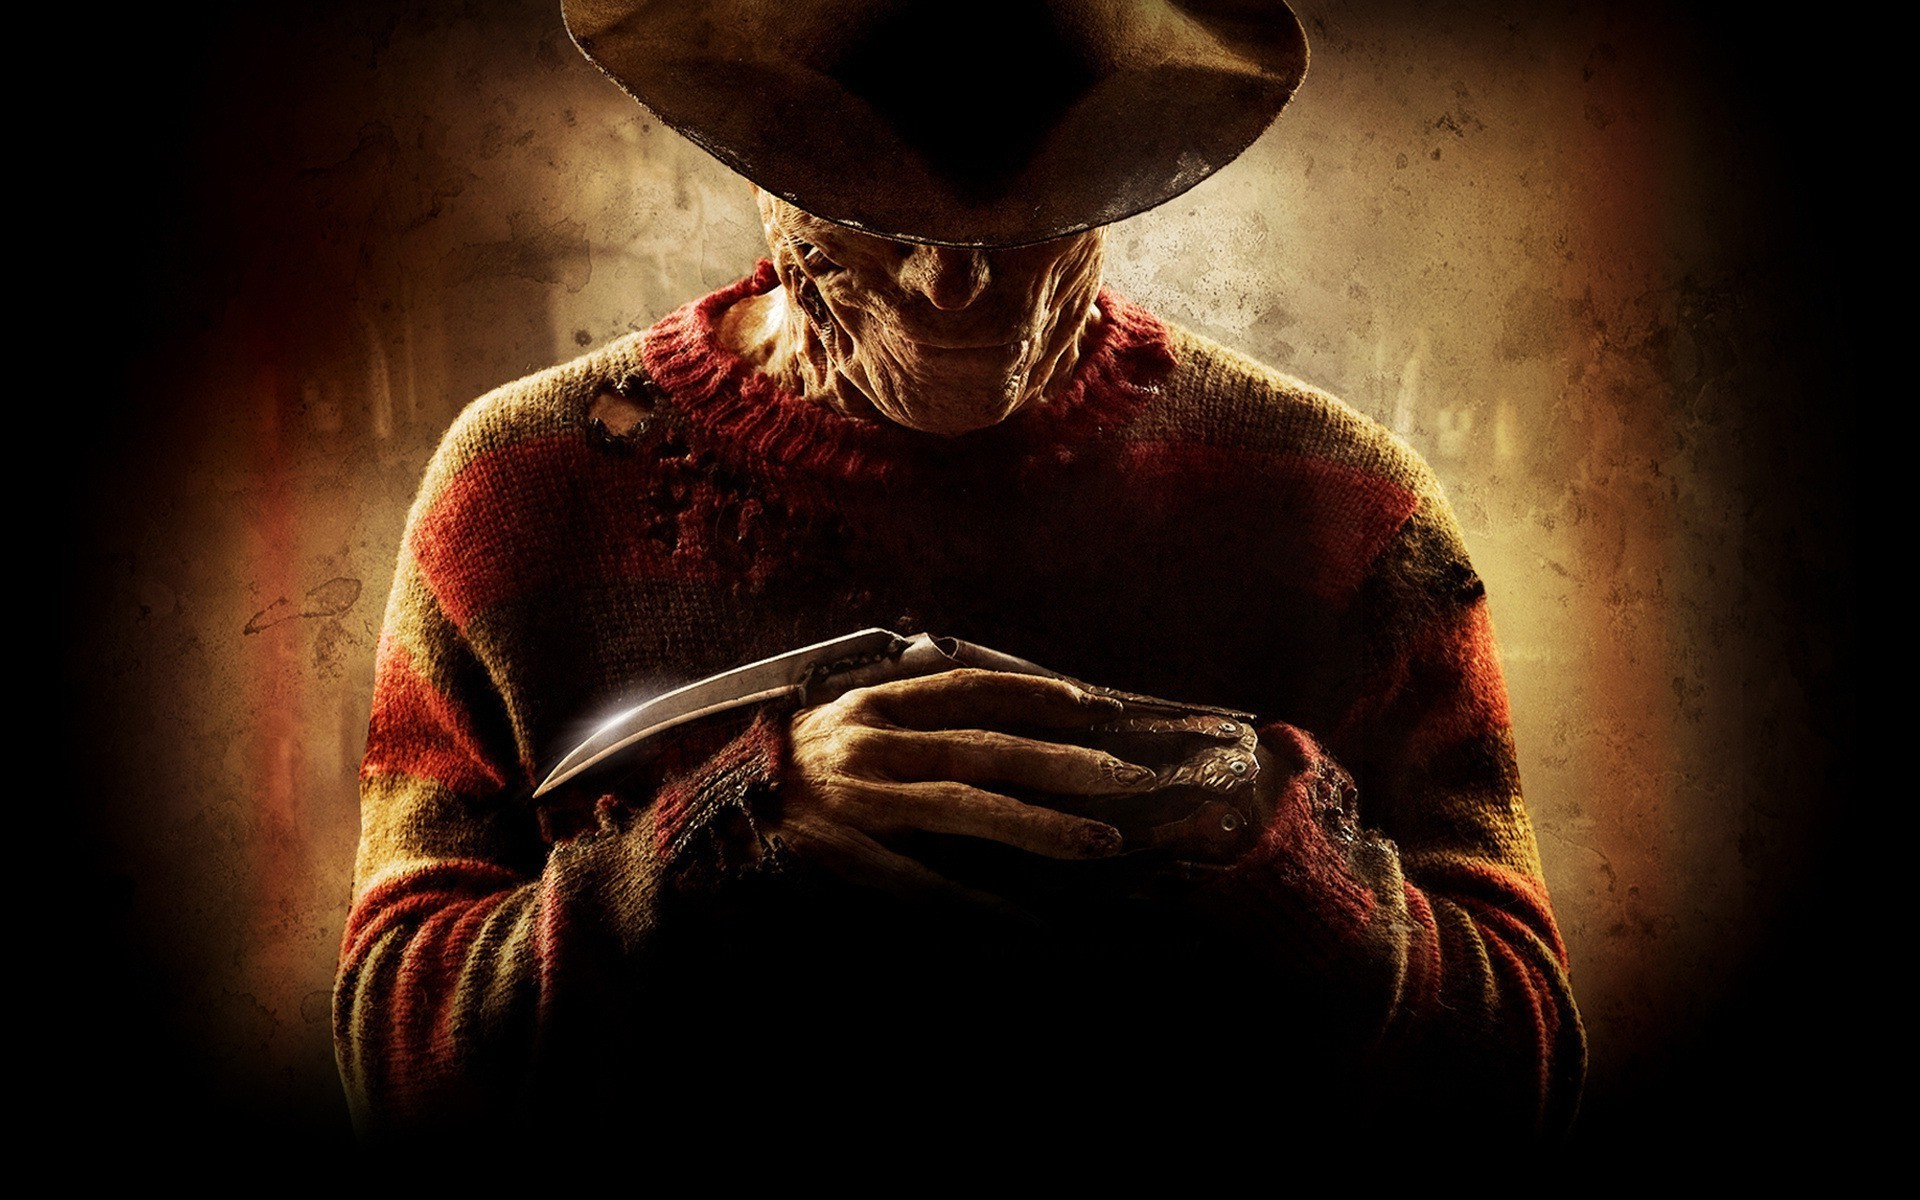 Freddy Krueger Wallpaper 2018 64 Pictures